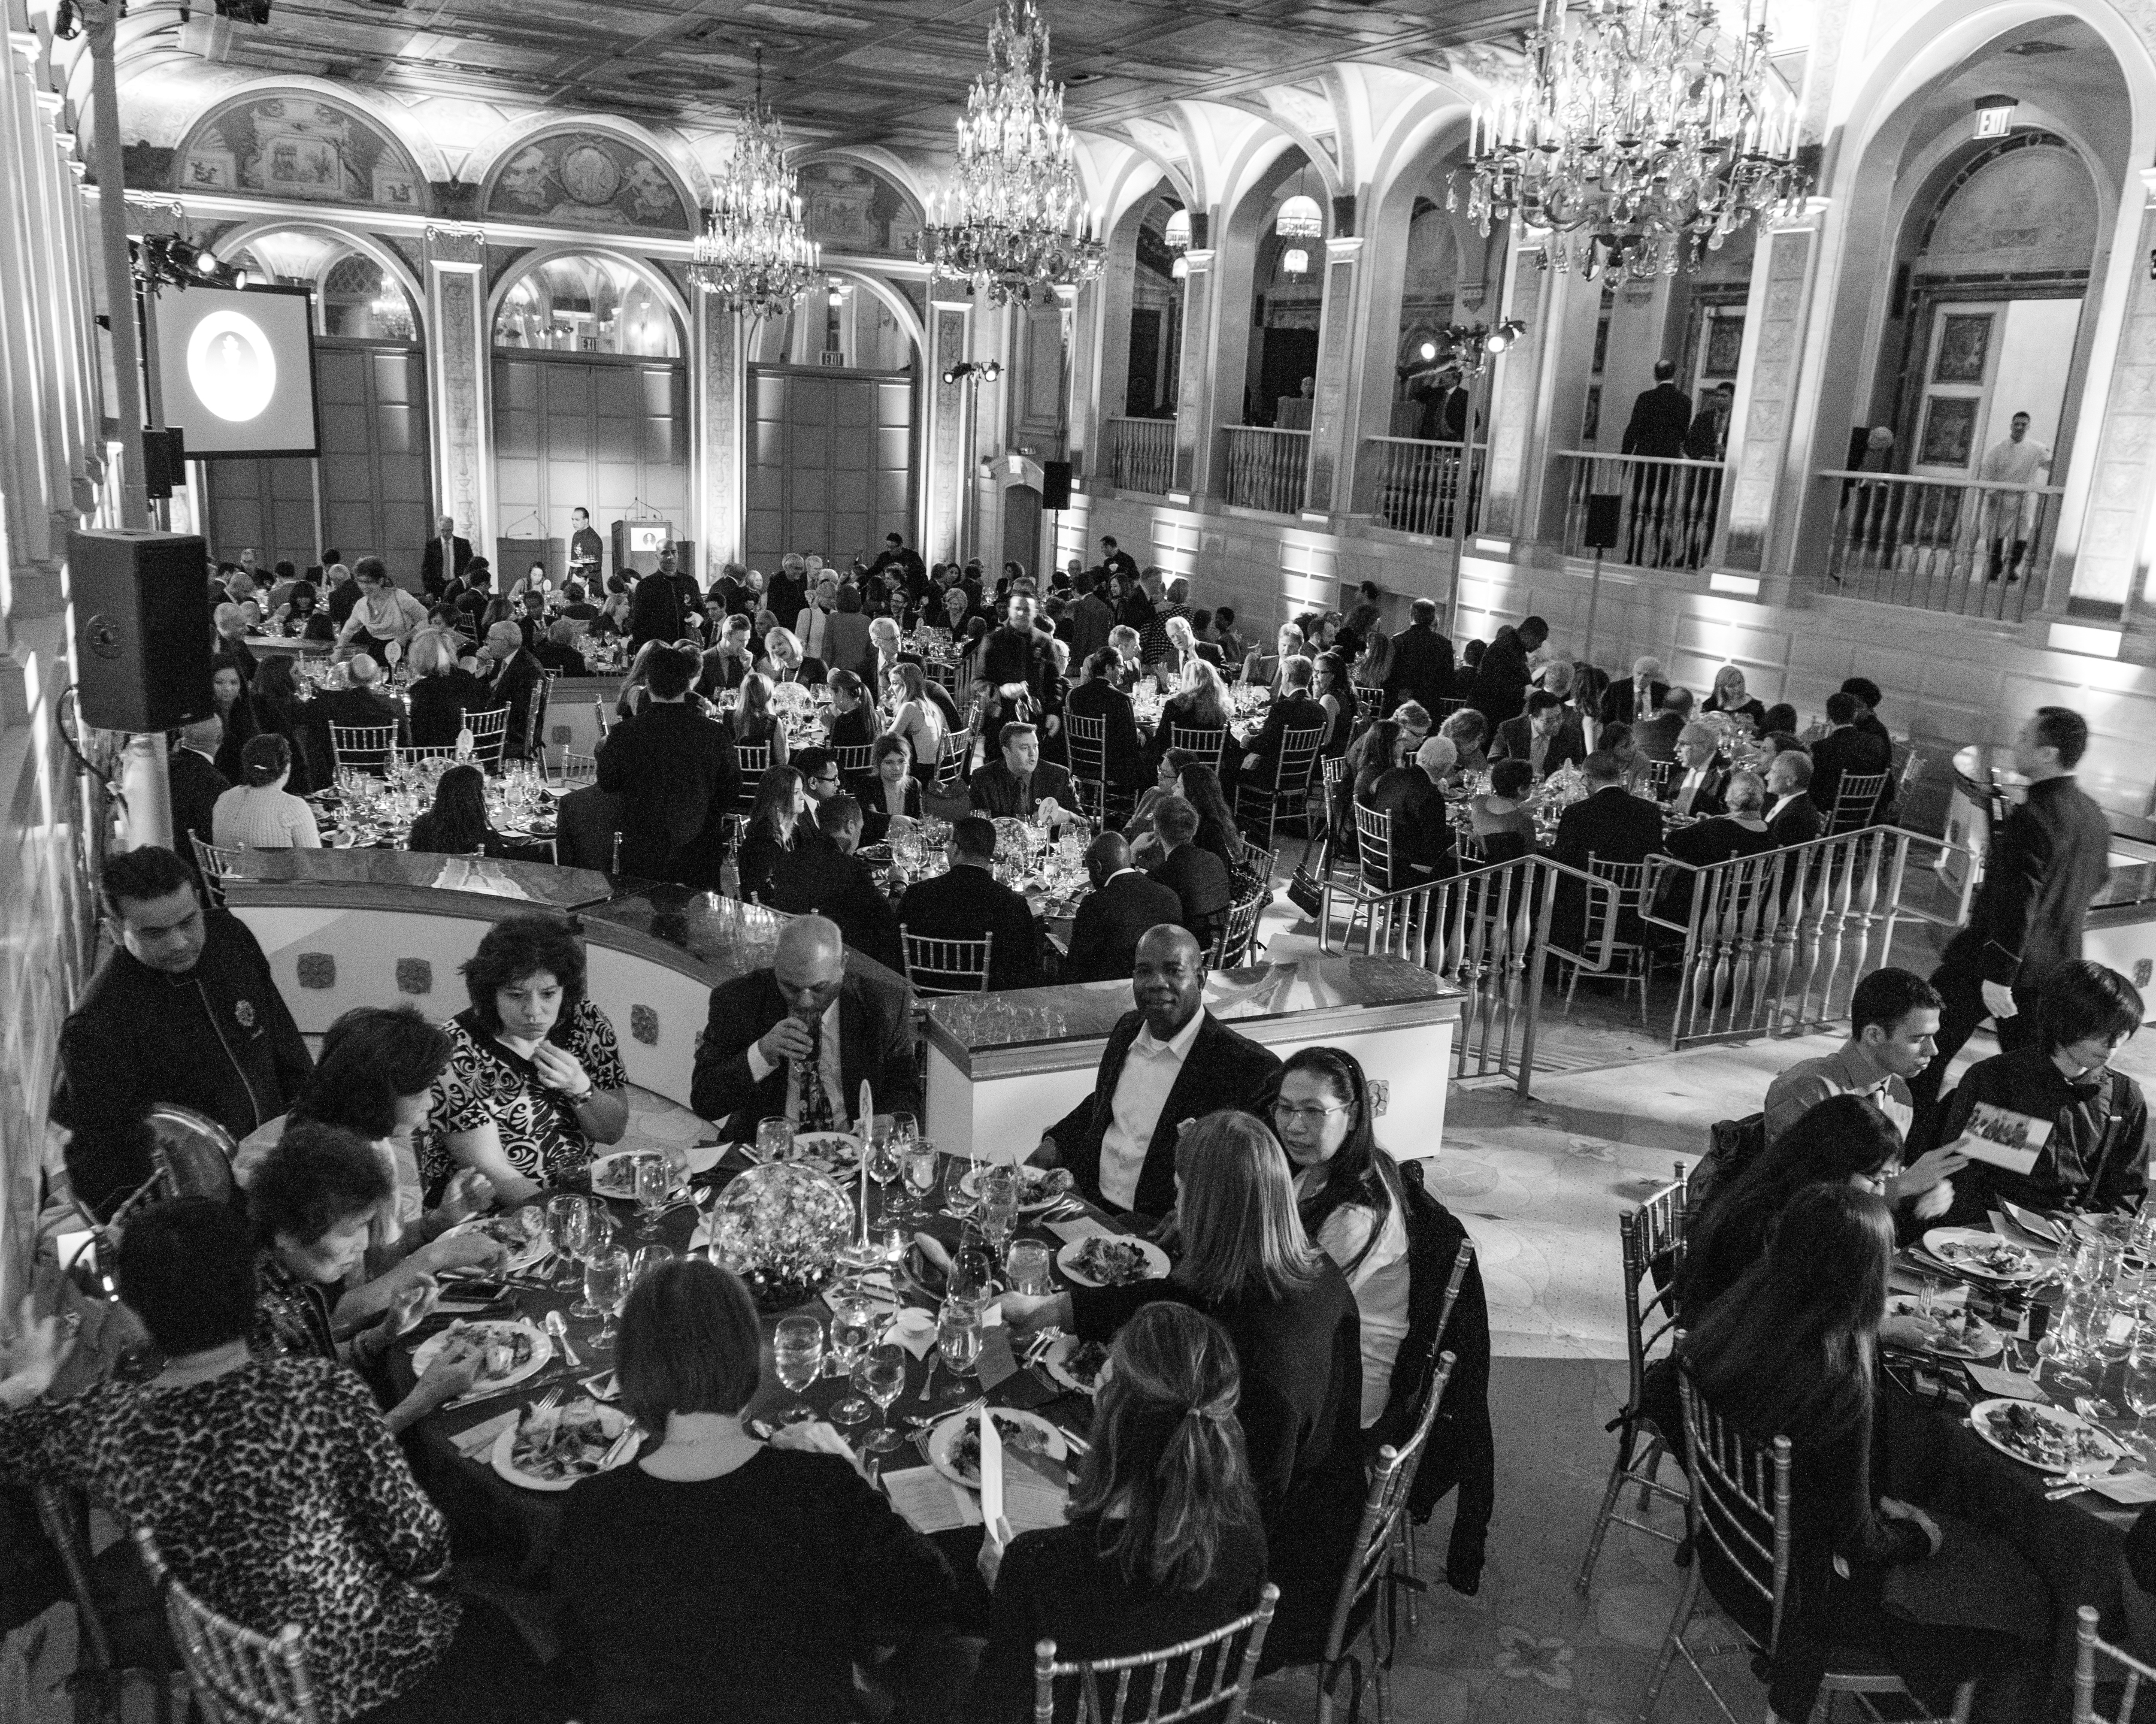 More than 200 guests enjoy great company over dinner.